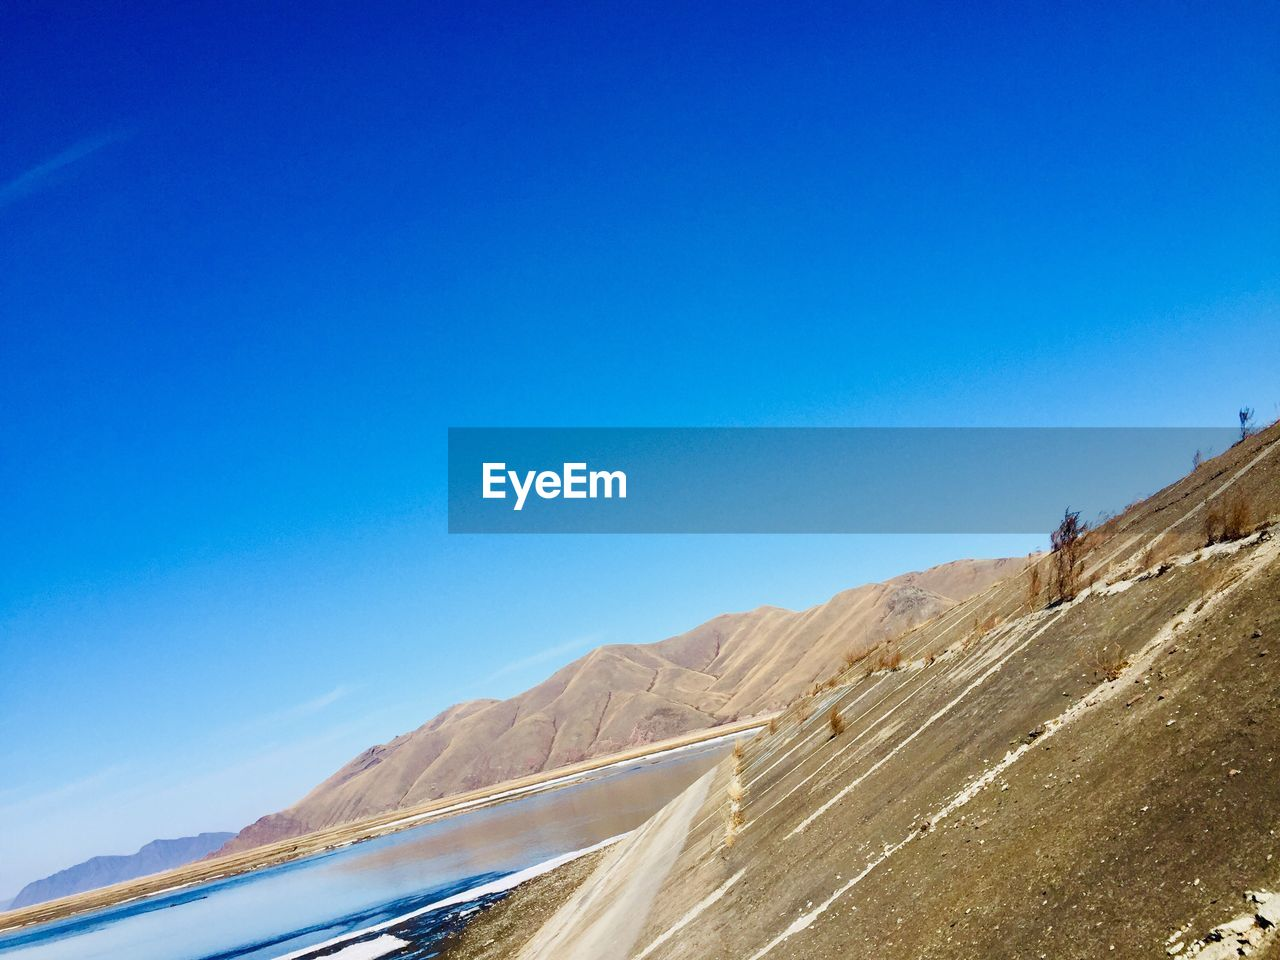 sky, blue, copy space, scenics - nature, clear sky, beauty in nature, nature, no people, tranquil scene, day, mountain, tranquility, transportation, non-urban scene, land, sunlight, road, water, outdoors, idyllic, climate, arid climate